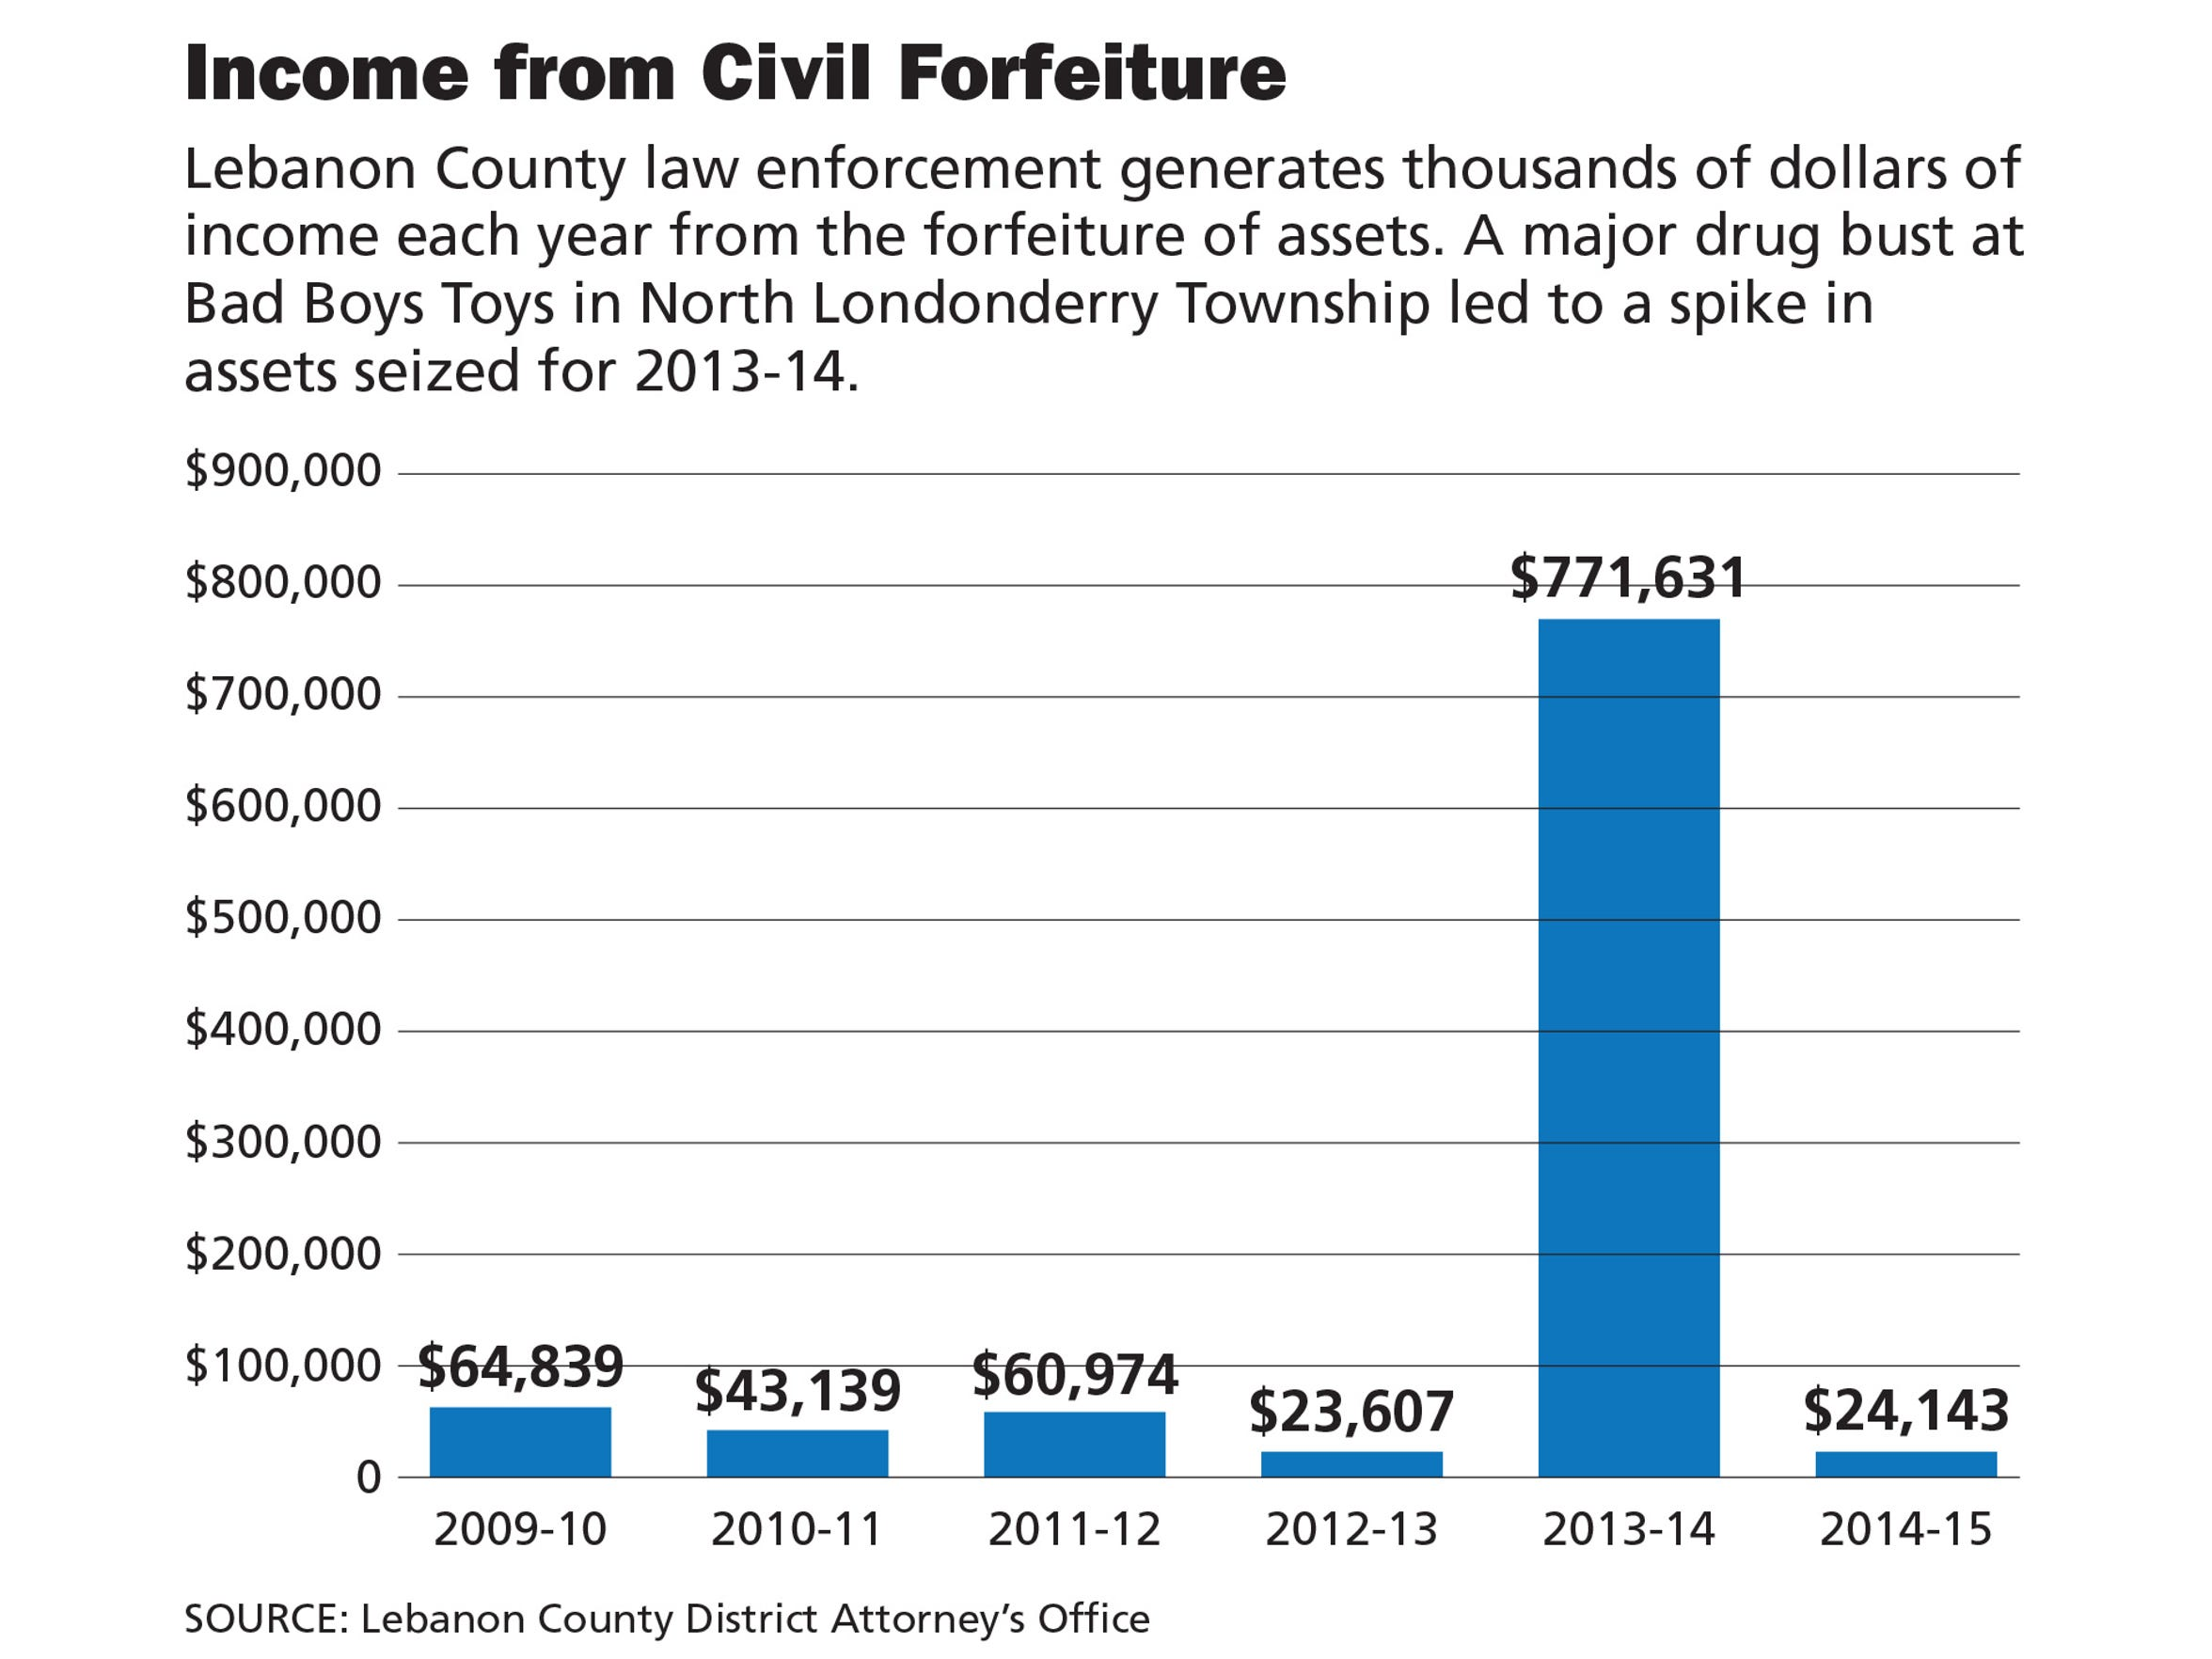 Civil forfeiture in Lebanon County.